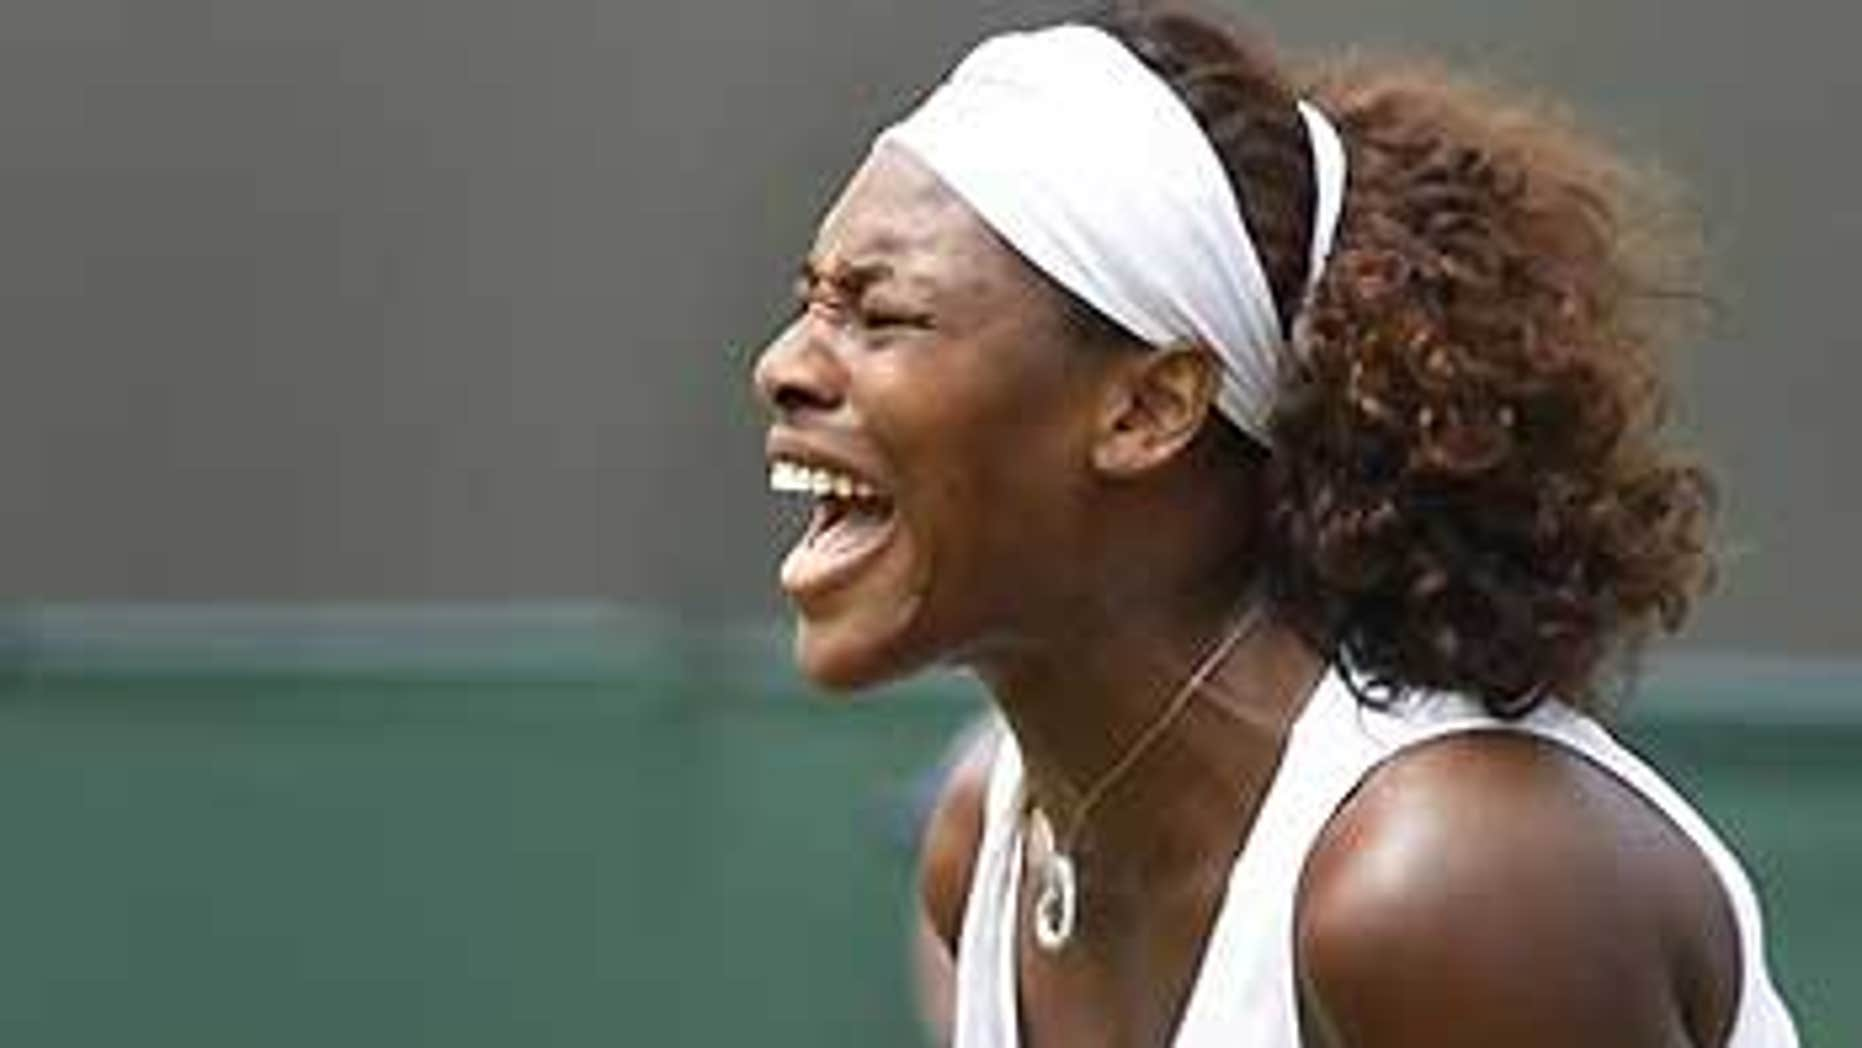 June 26: Serena Williams celebrates winning a point against Roberta Vinci of Italy during their third round singles match at Wimbledon, Friday.